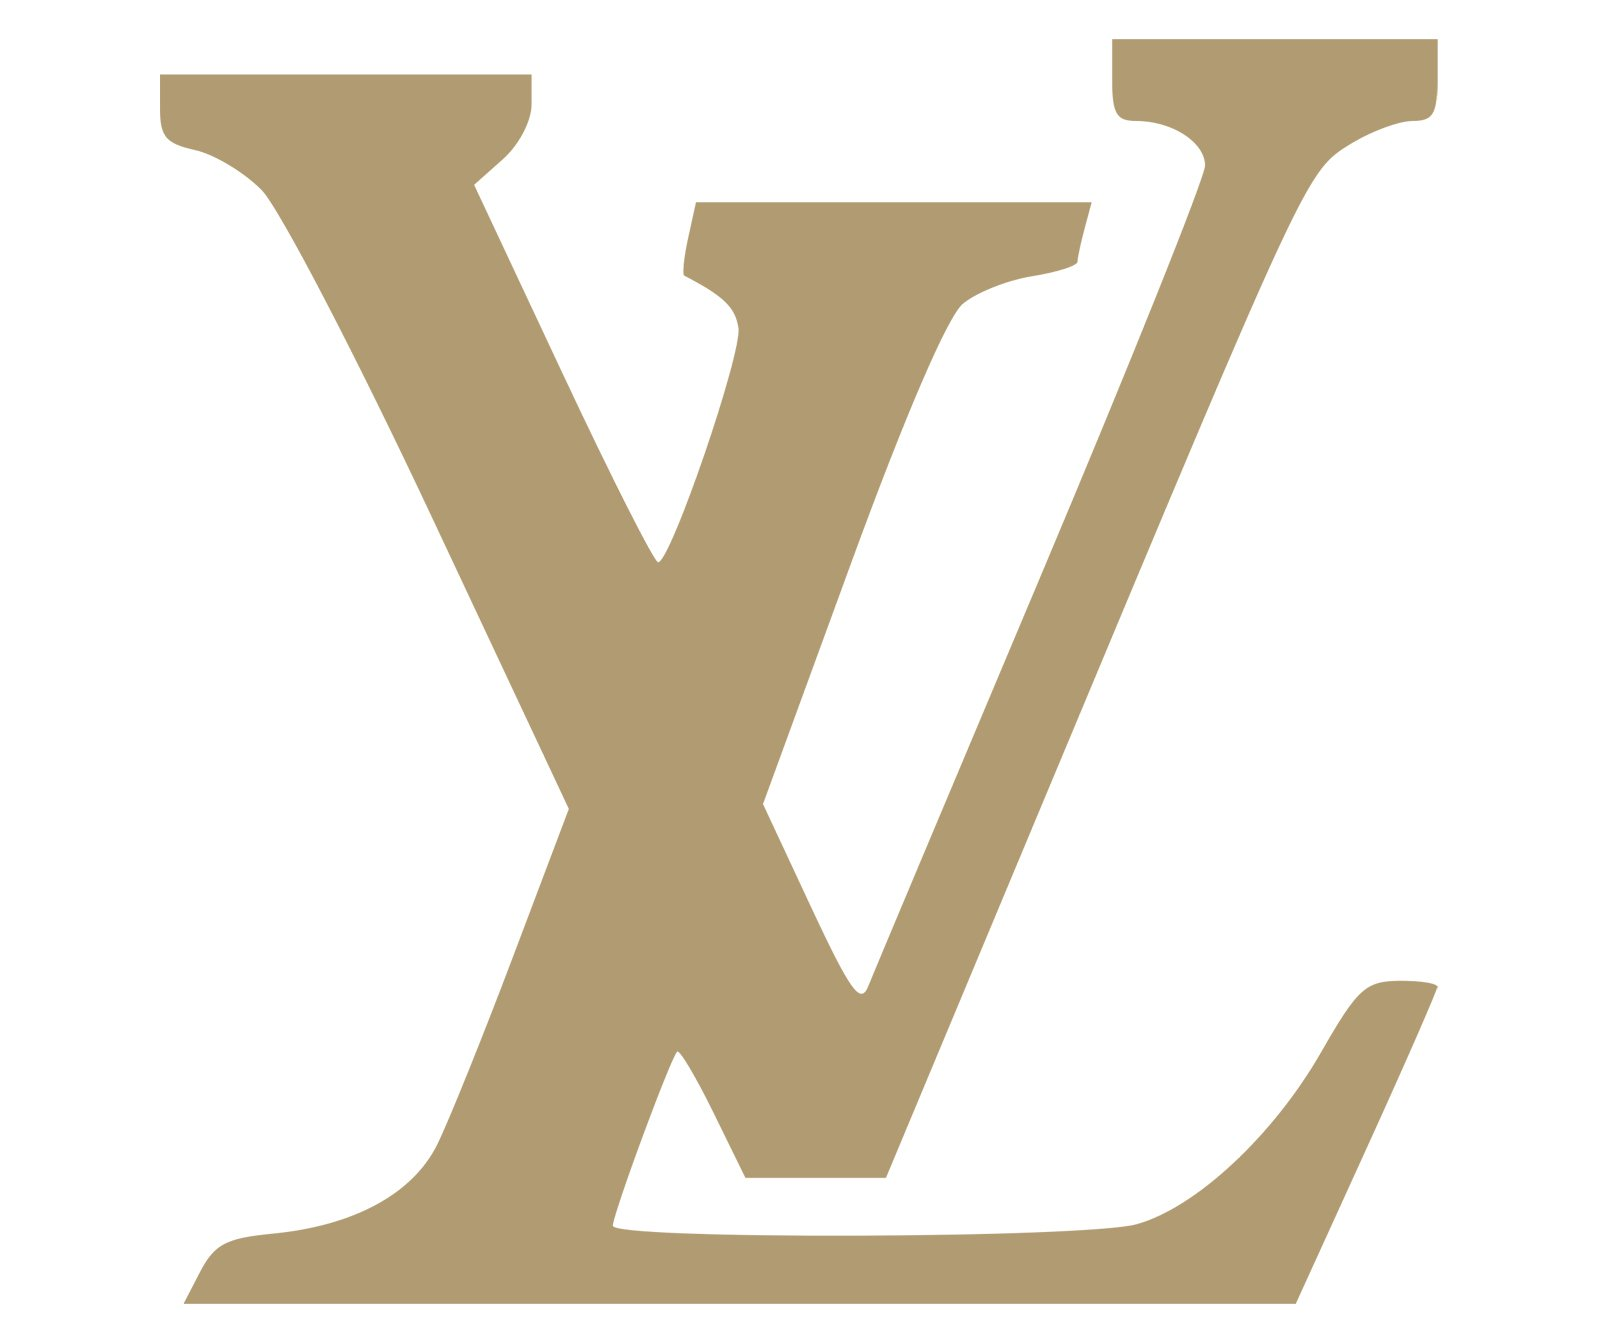 Louis Vuitton Logo, Louis Vuitton Symbol Meaning, History ...